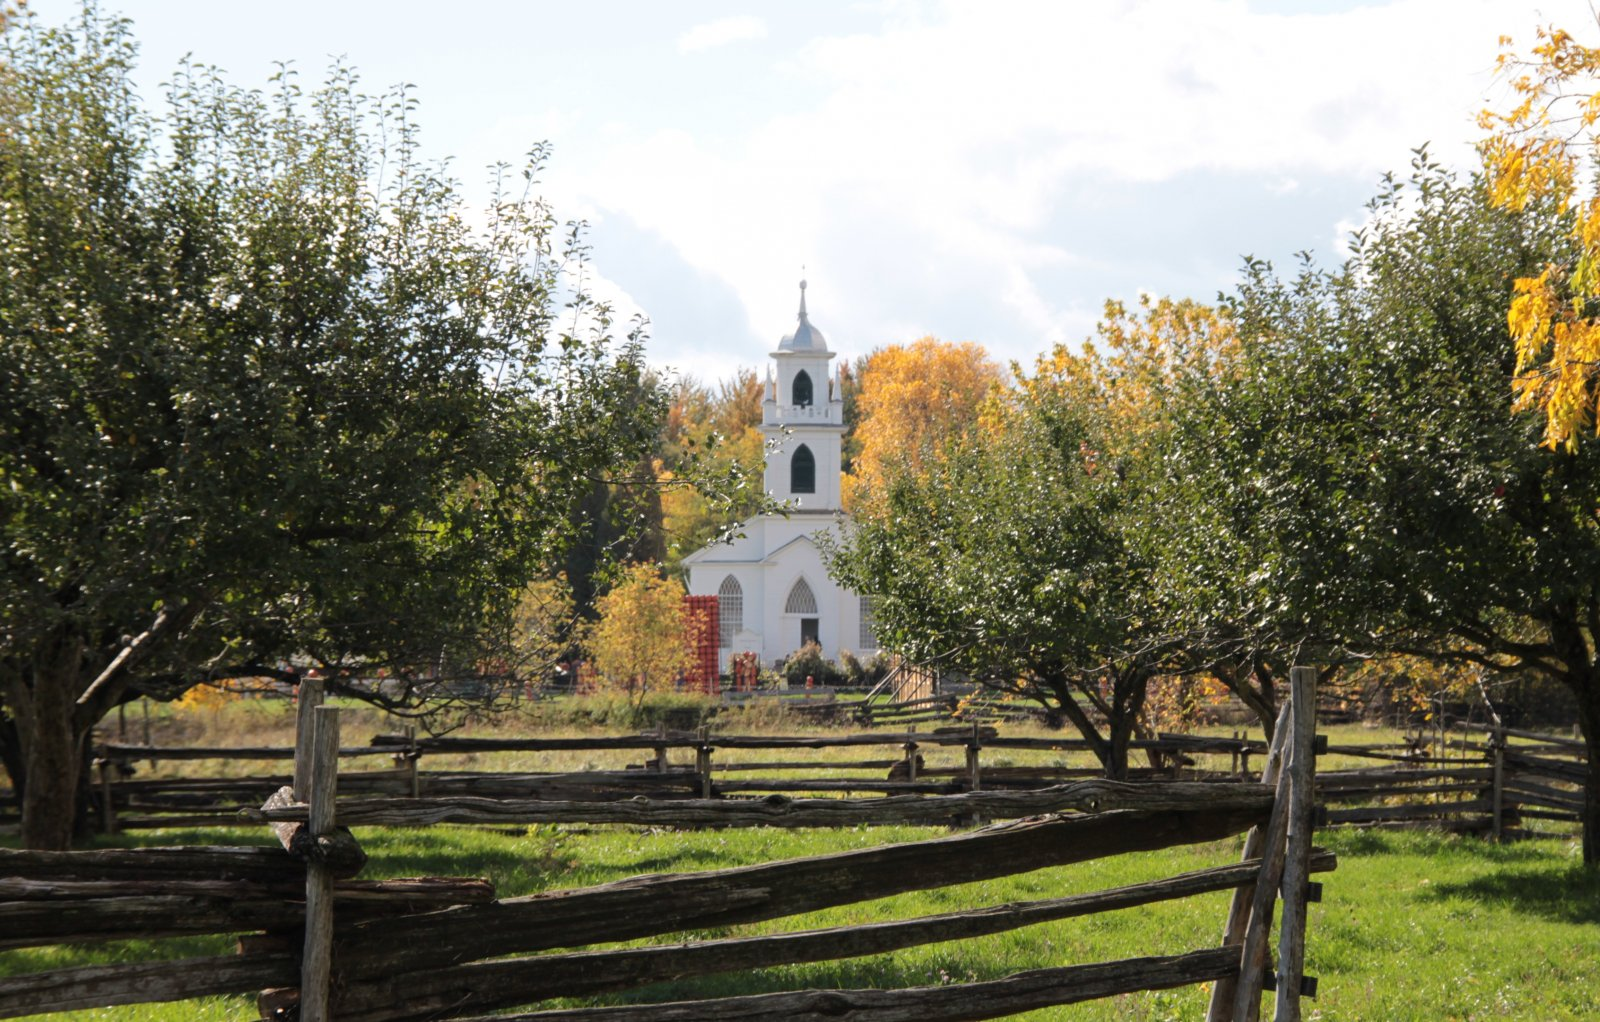 The Church at Upper Canada Village